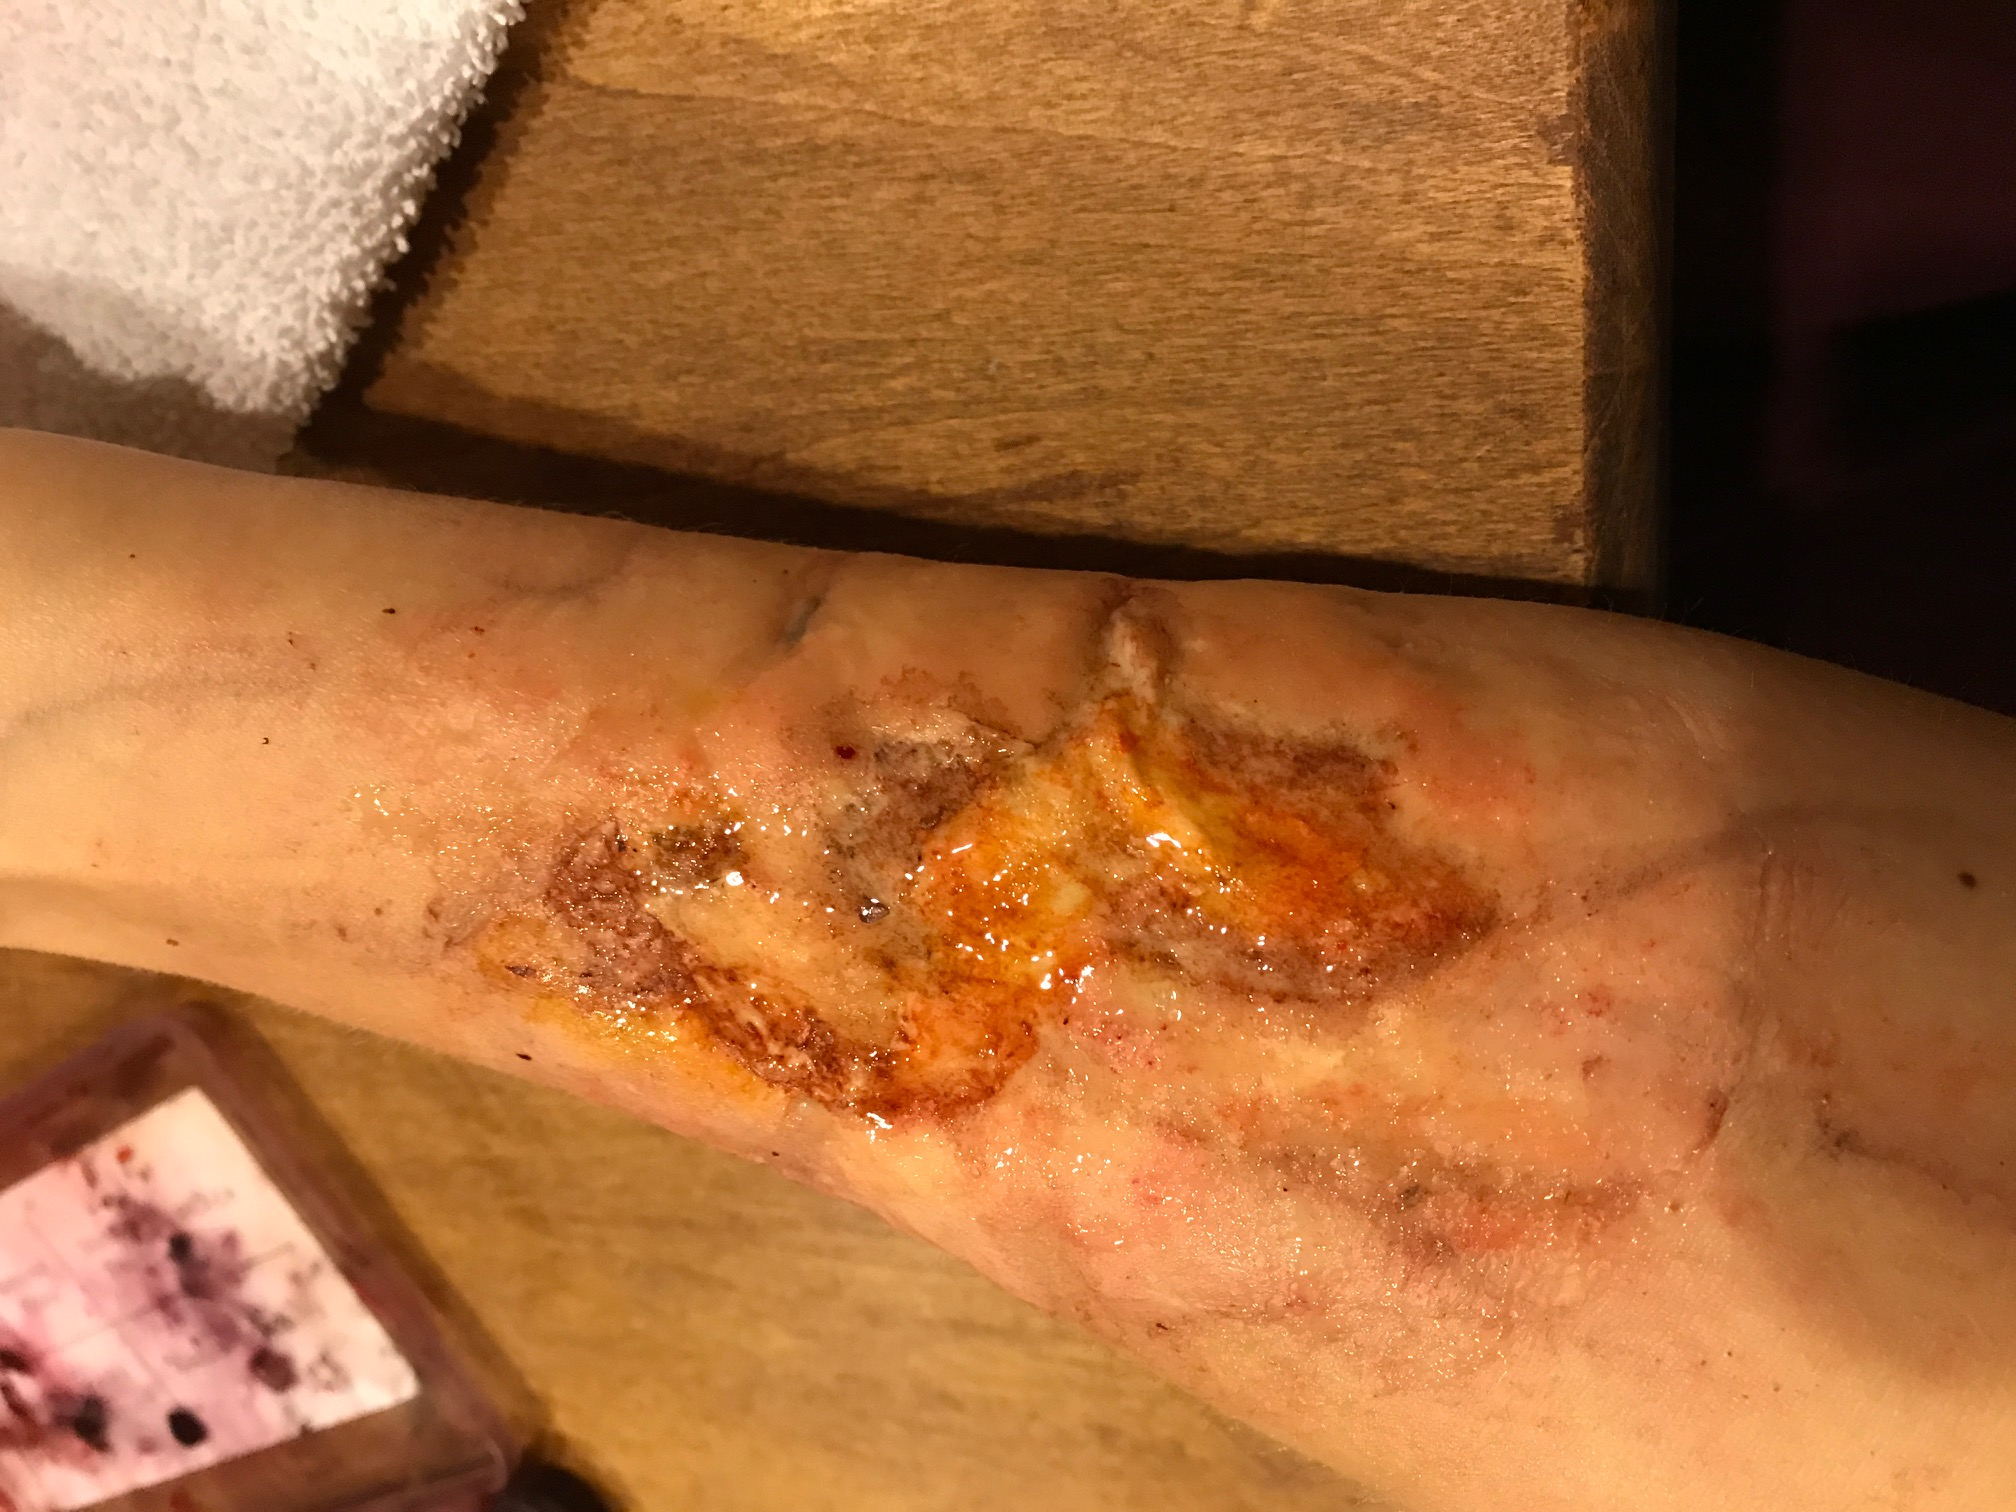 Special Effects Makeup Burn on Arm